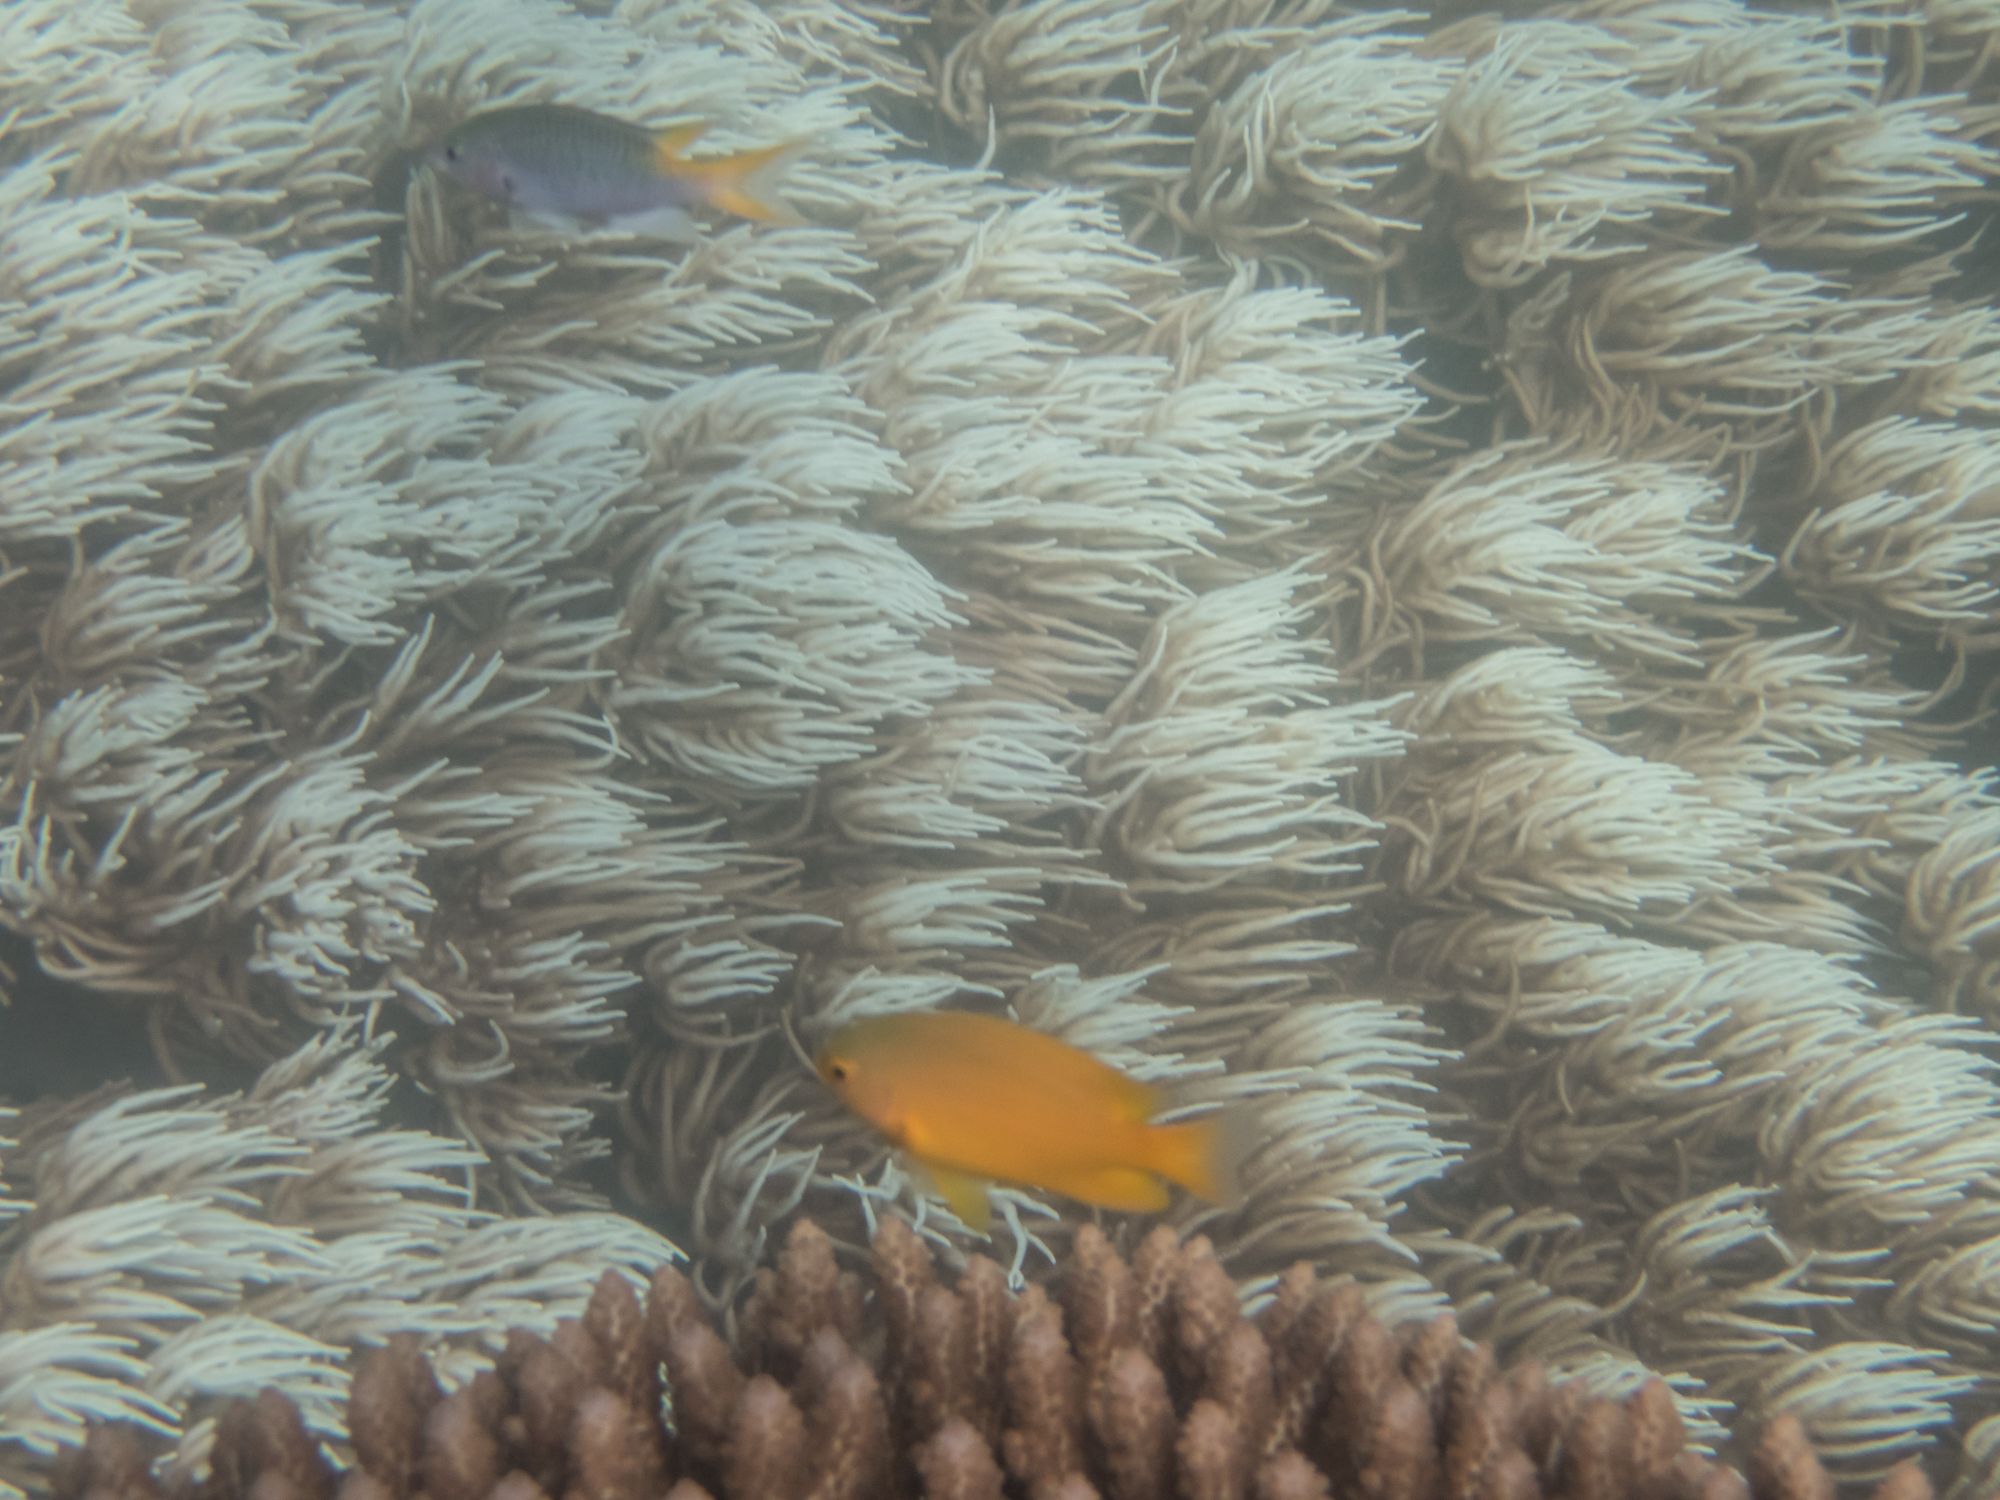 The current can be quite strong in some parts of the reef